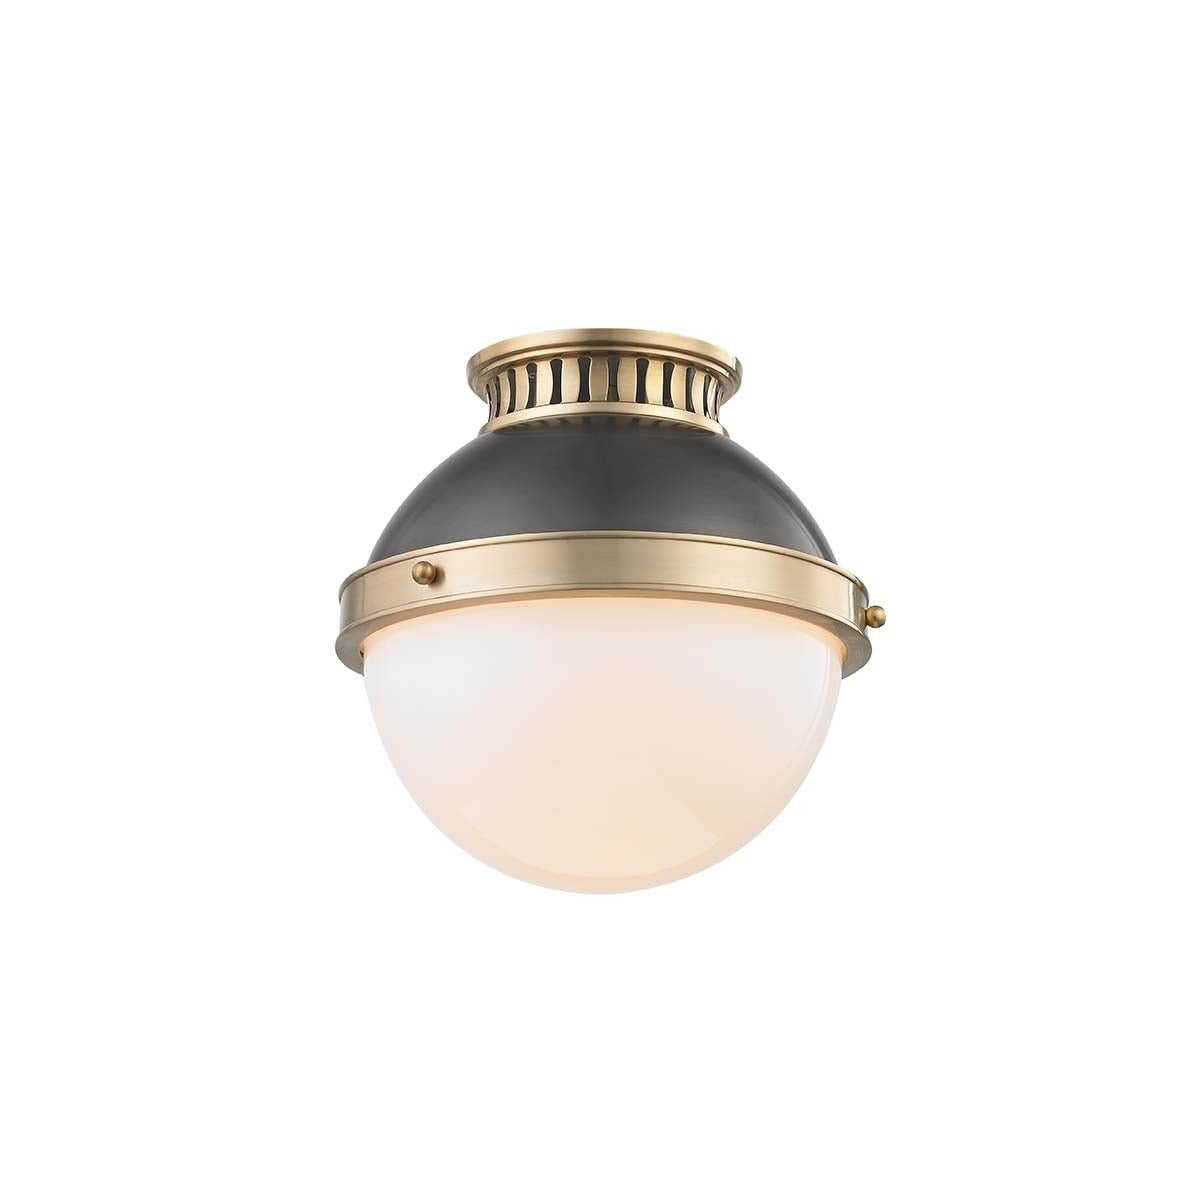 Hudson Valley Latham 1-light Aged and Antique Distressed Bronze Small Flush Mount, Opal Shiny Glass